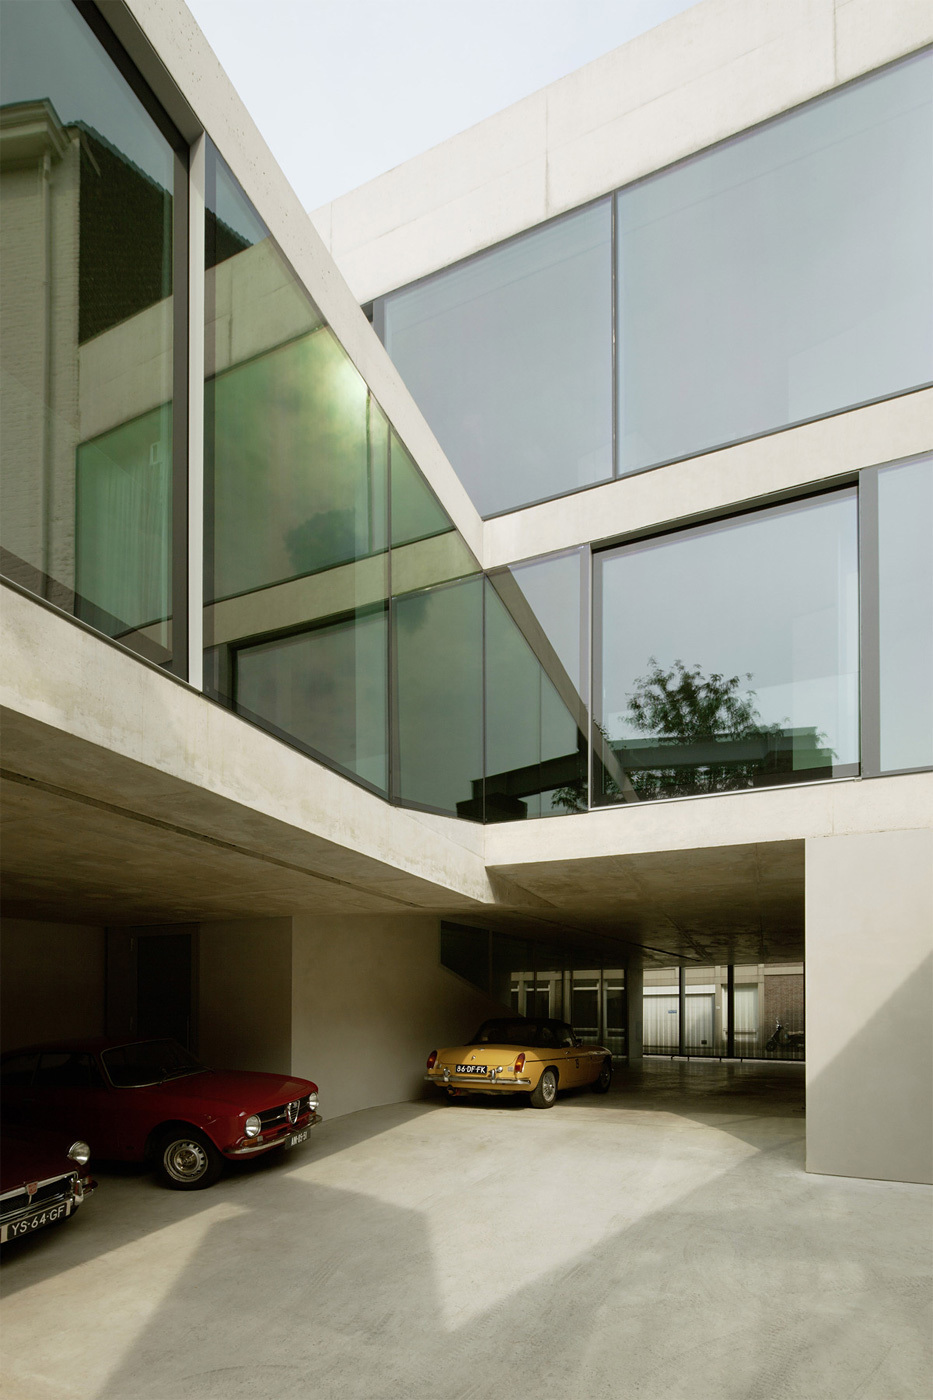 V House in Maastricht, the Netherlands by Wiel Arets Architects